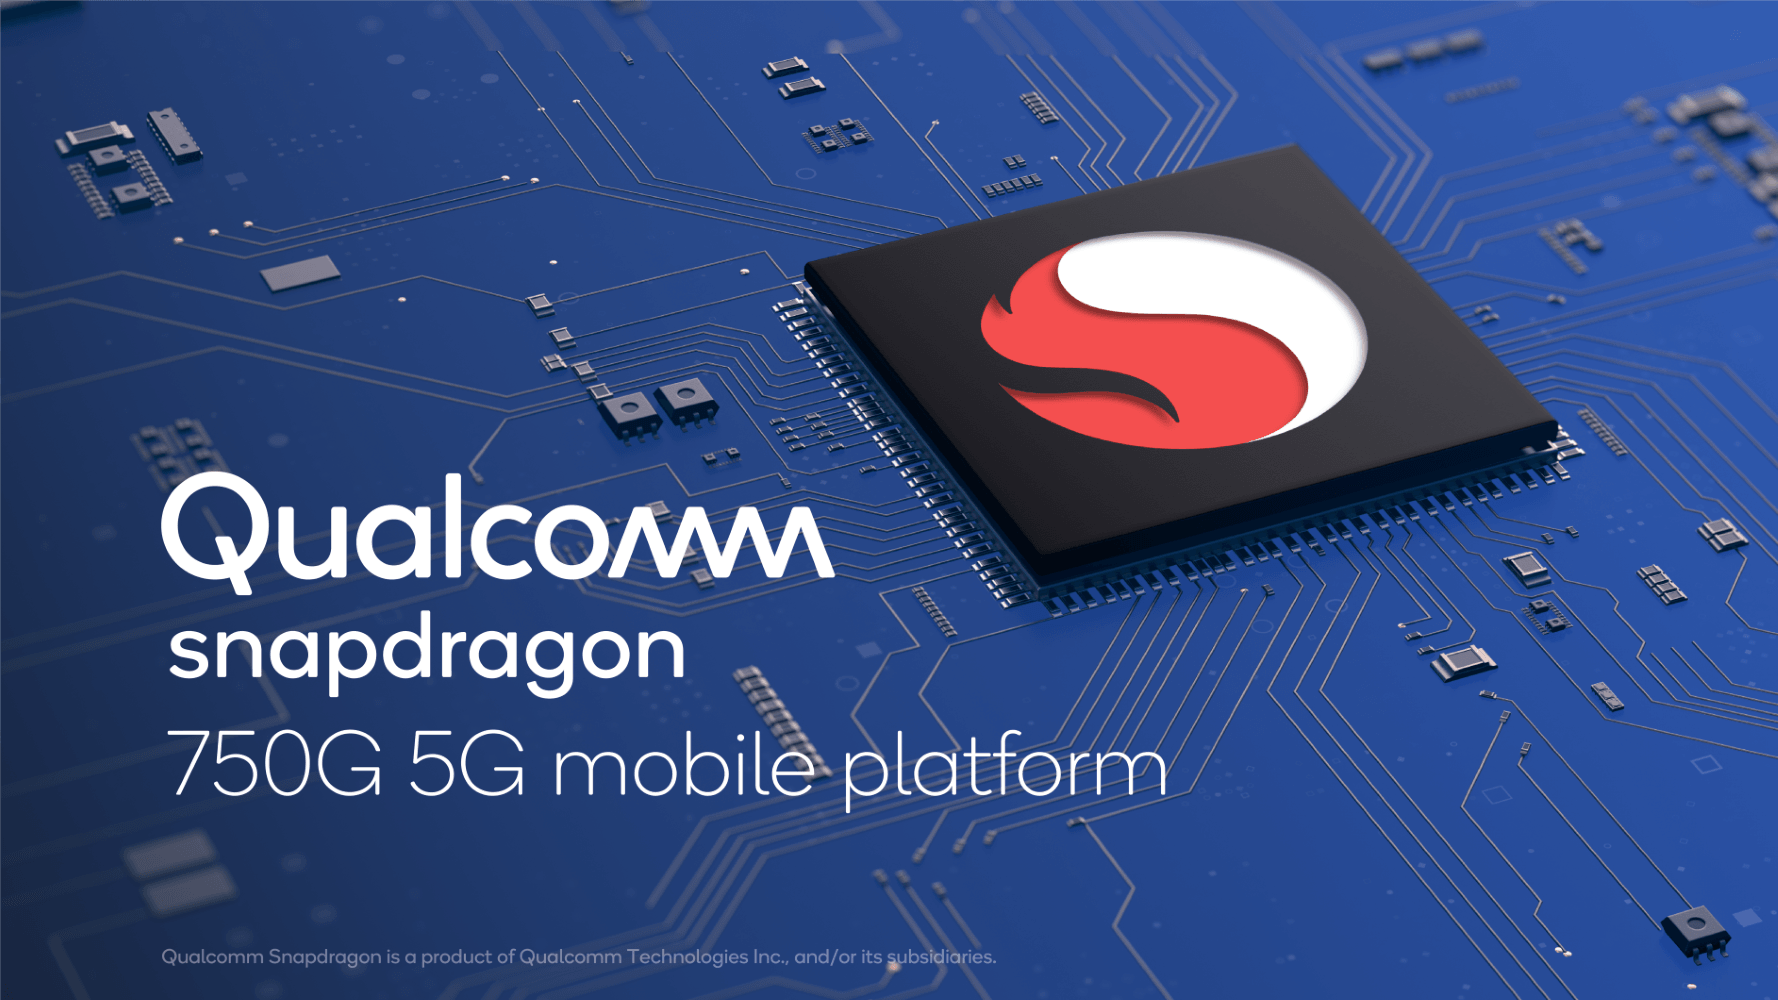 Qualcomm announces Snapdragon 750G processor with up to 20% improvement over 730G